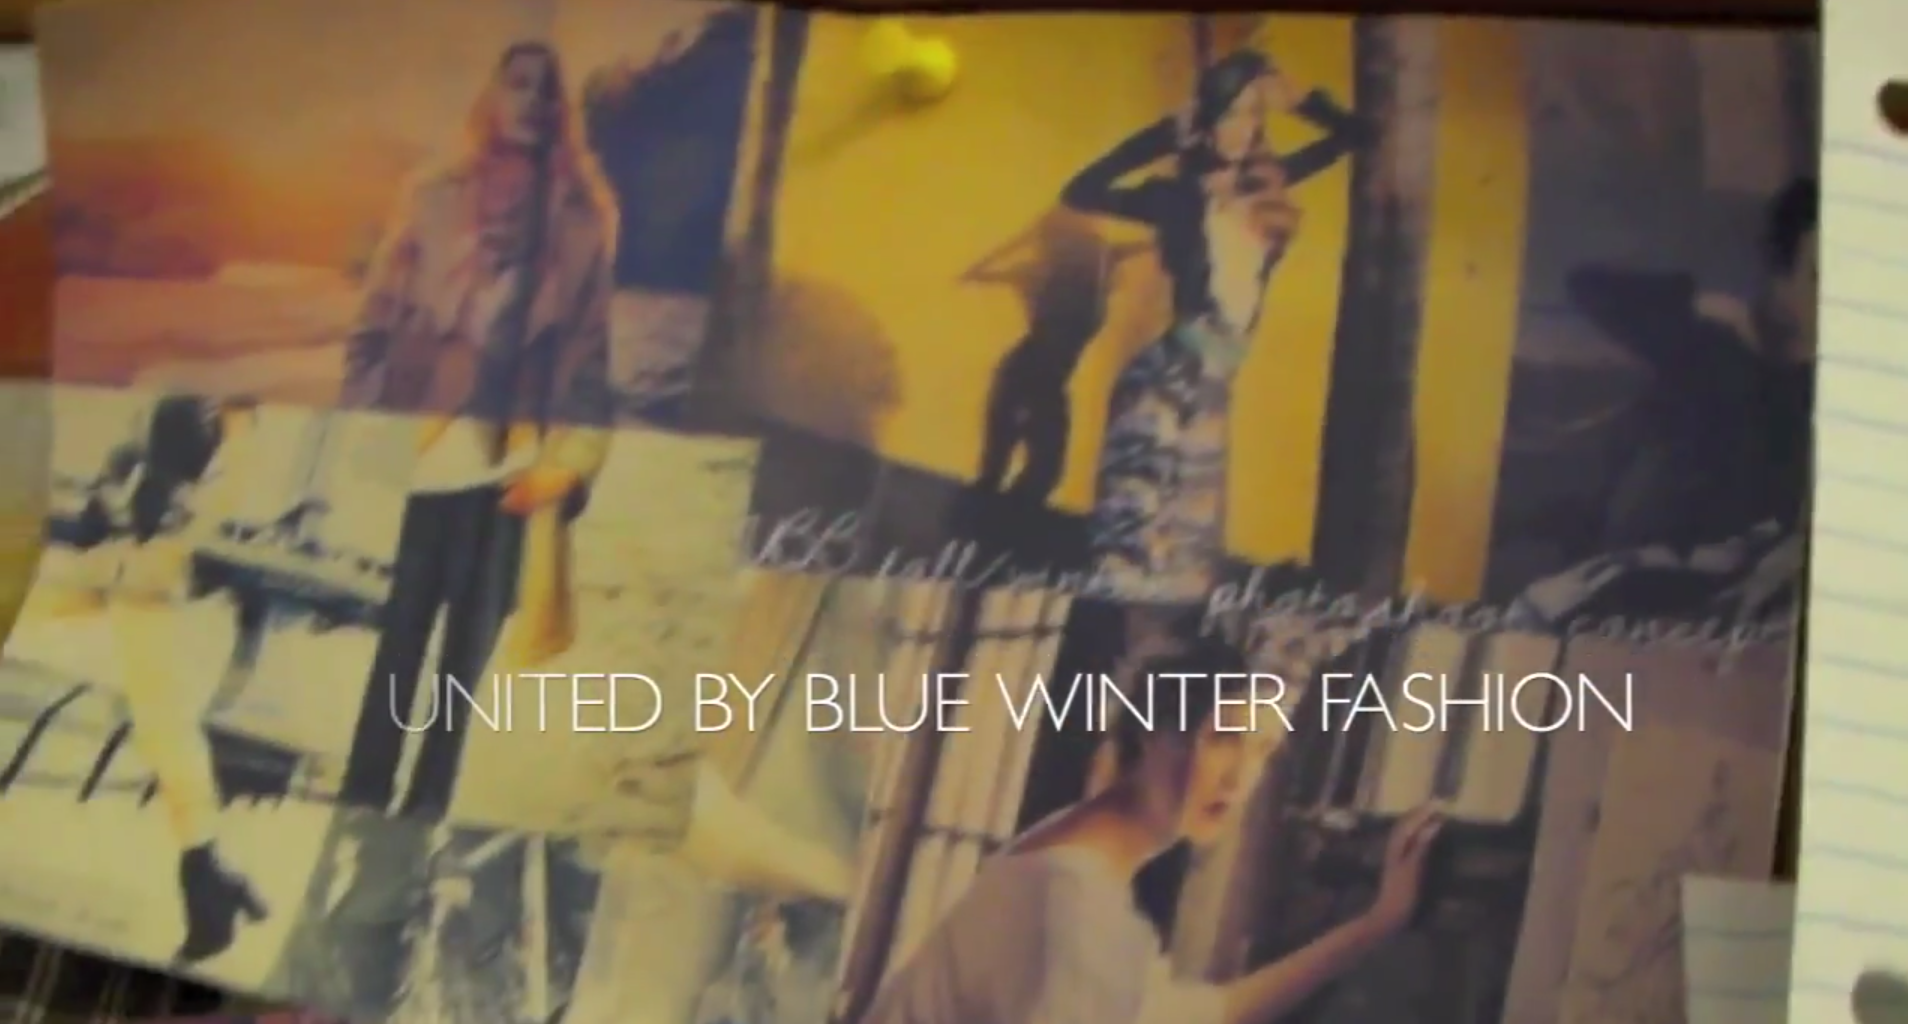 UBB Winter Fashion shoot